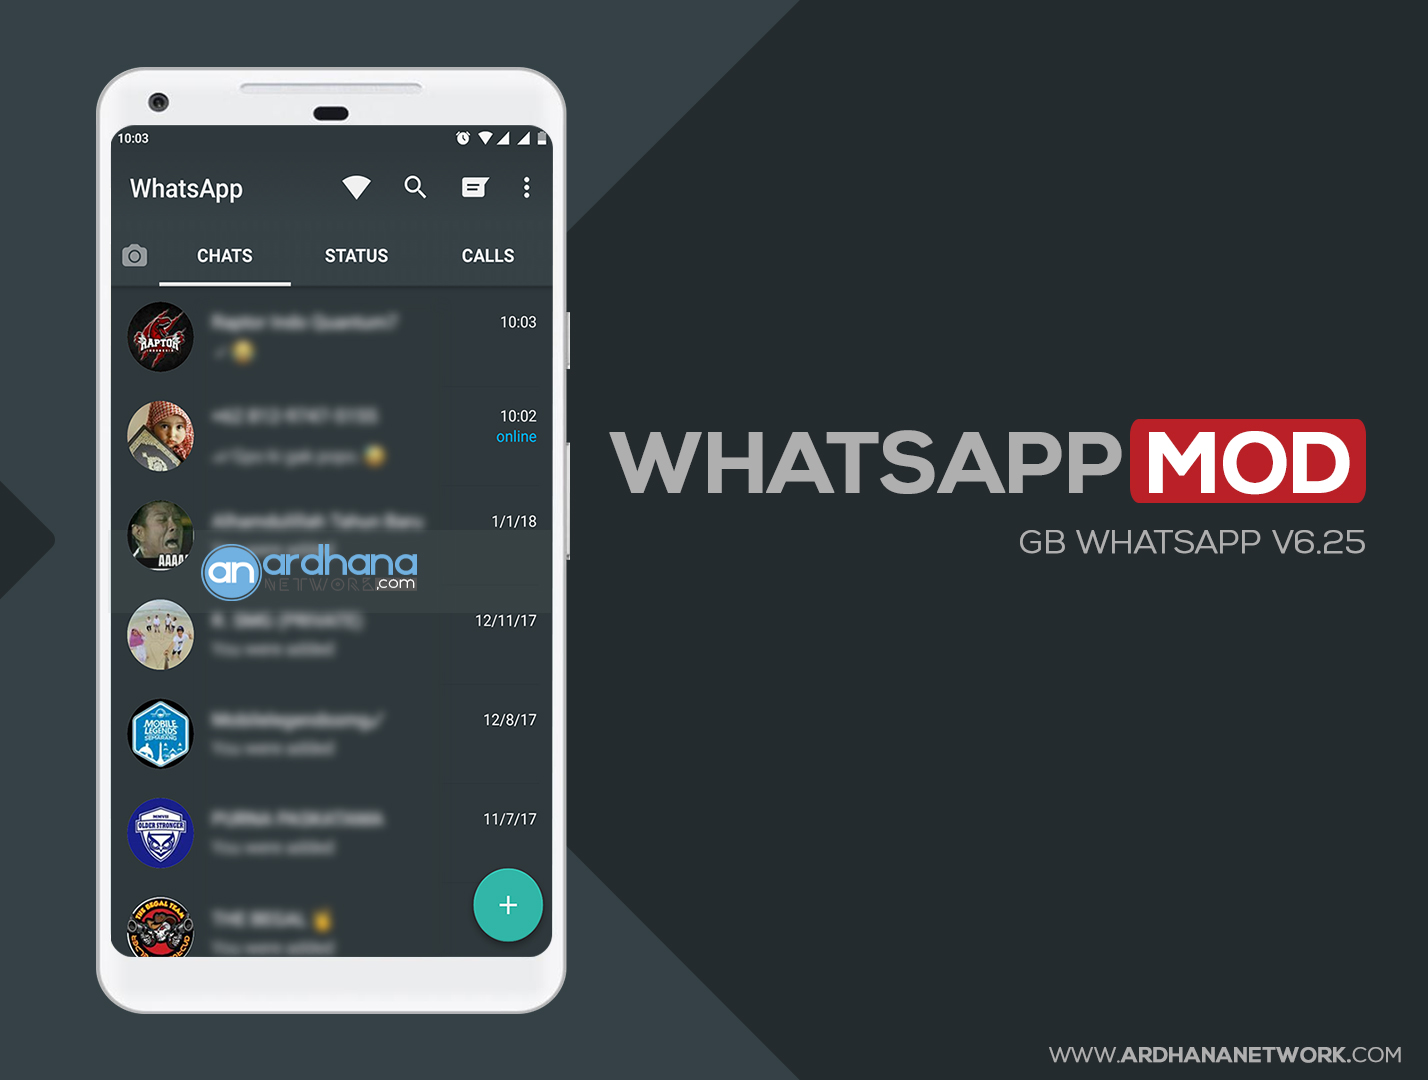 GB Whatsapp V6.25